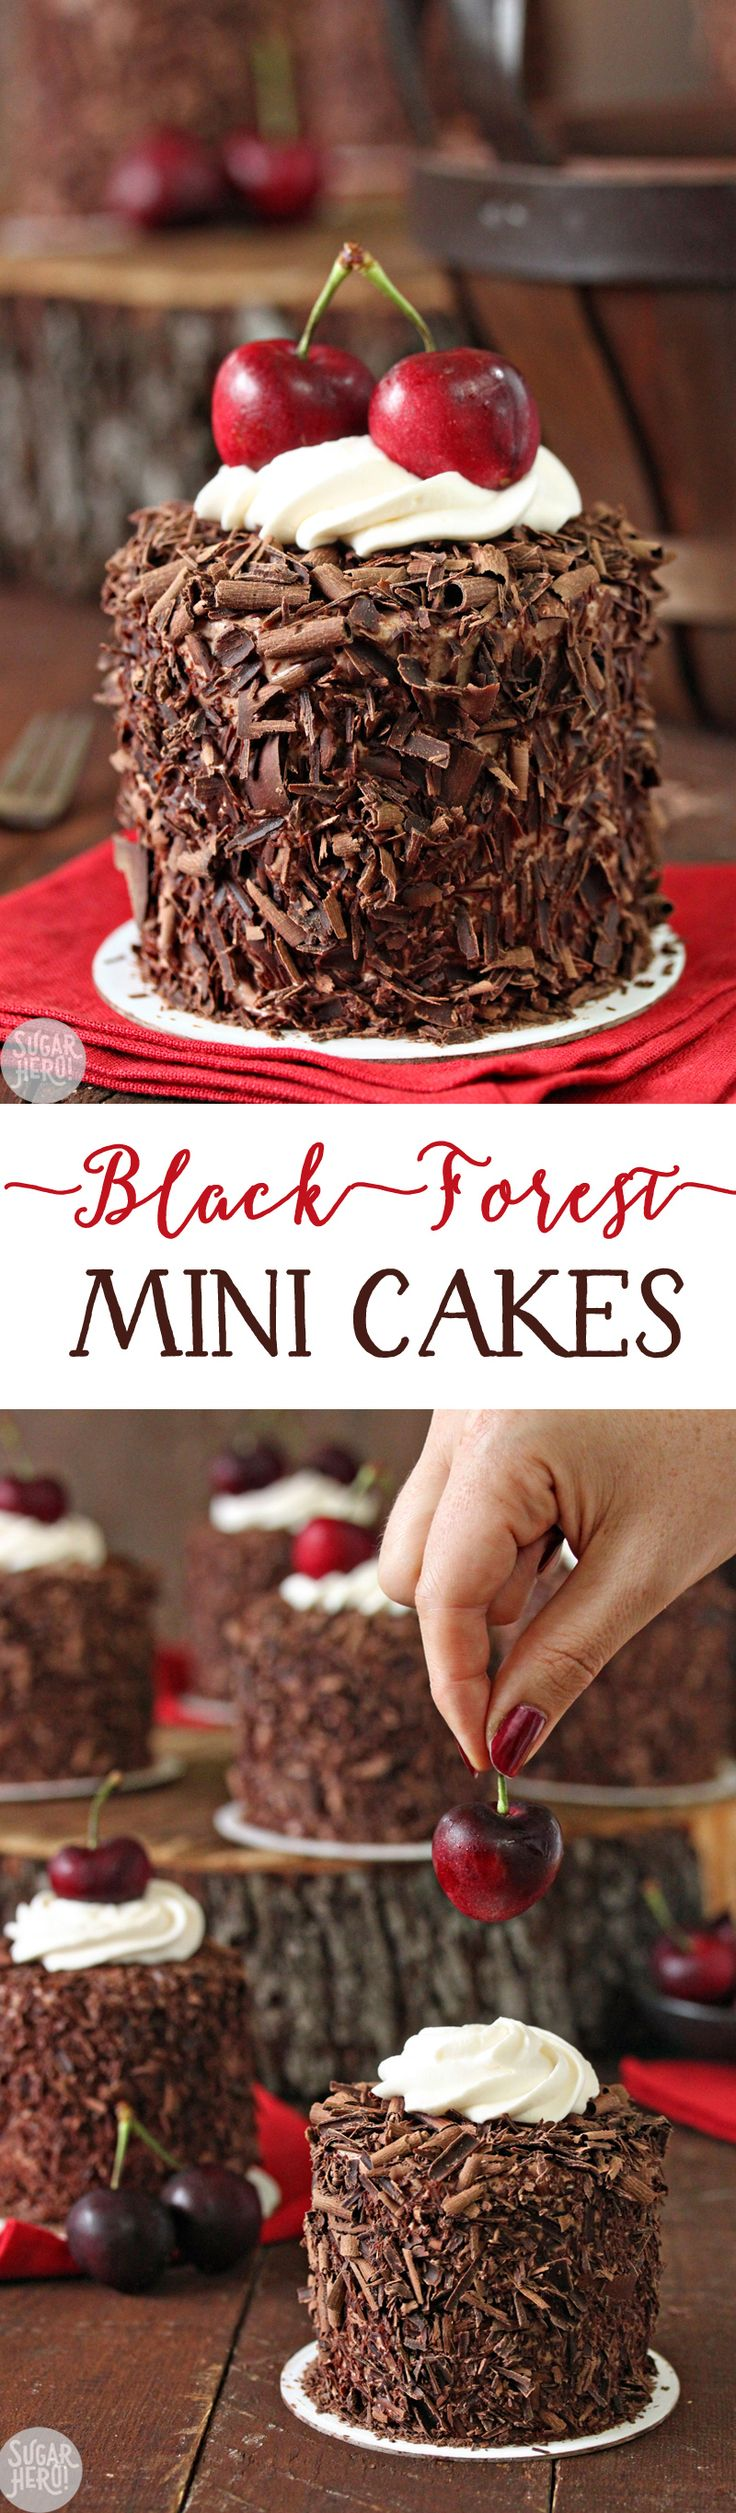 Black Forest Mini Cakes - adorable chocolate-cherry cakes, with a fresh cherry on top! | From SugarHero.com